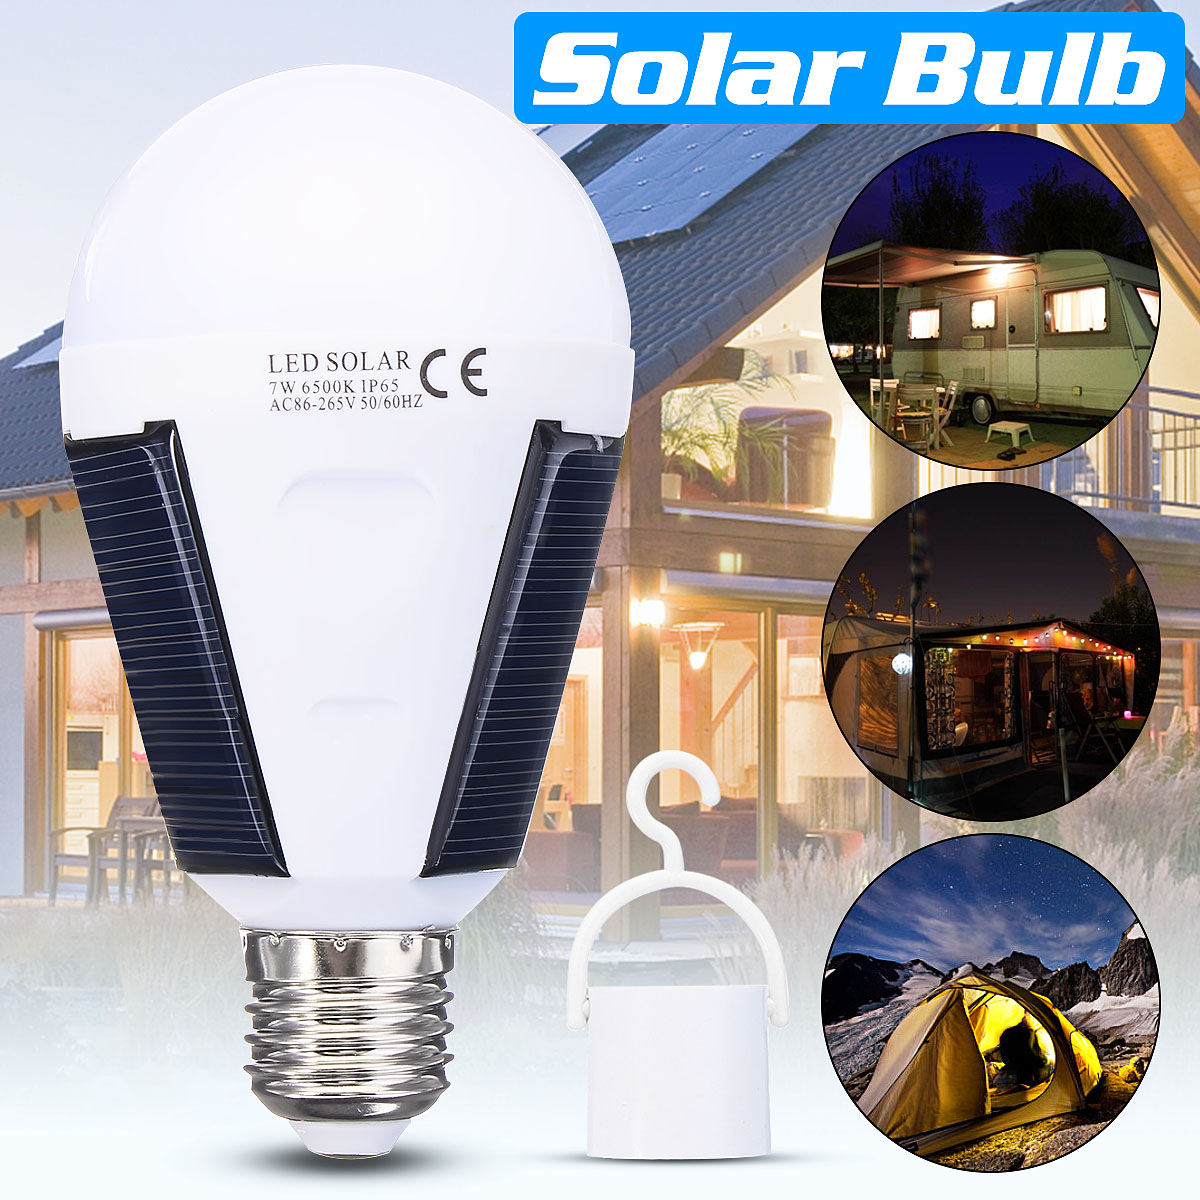 Portable 7W Solar LED Light Bulb Home Emergency Lantern Outdoor Camping Hiking Fishing Light